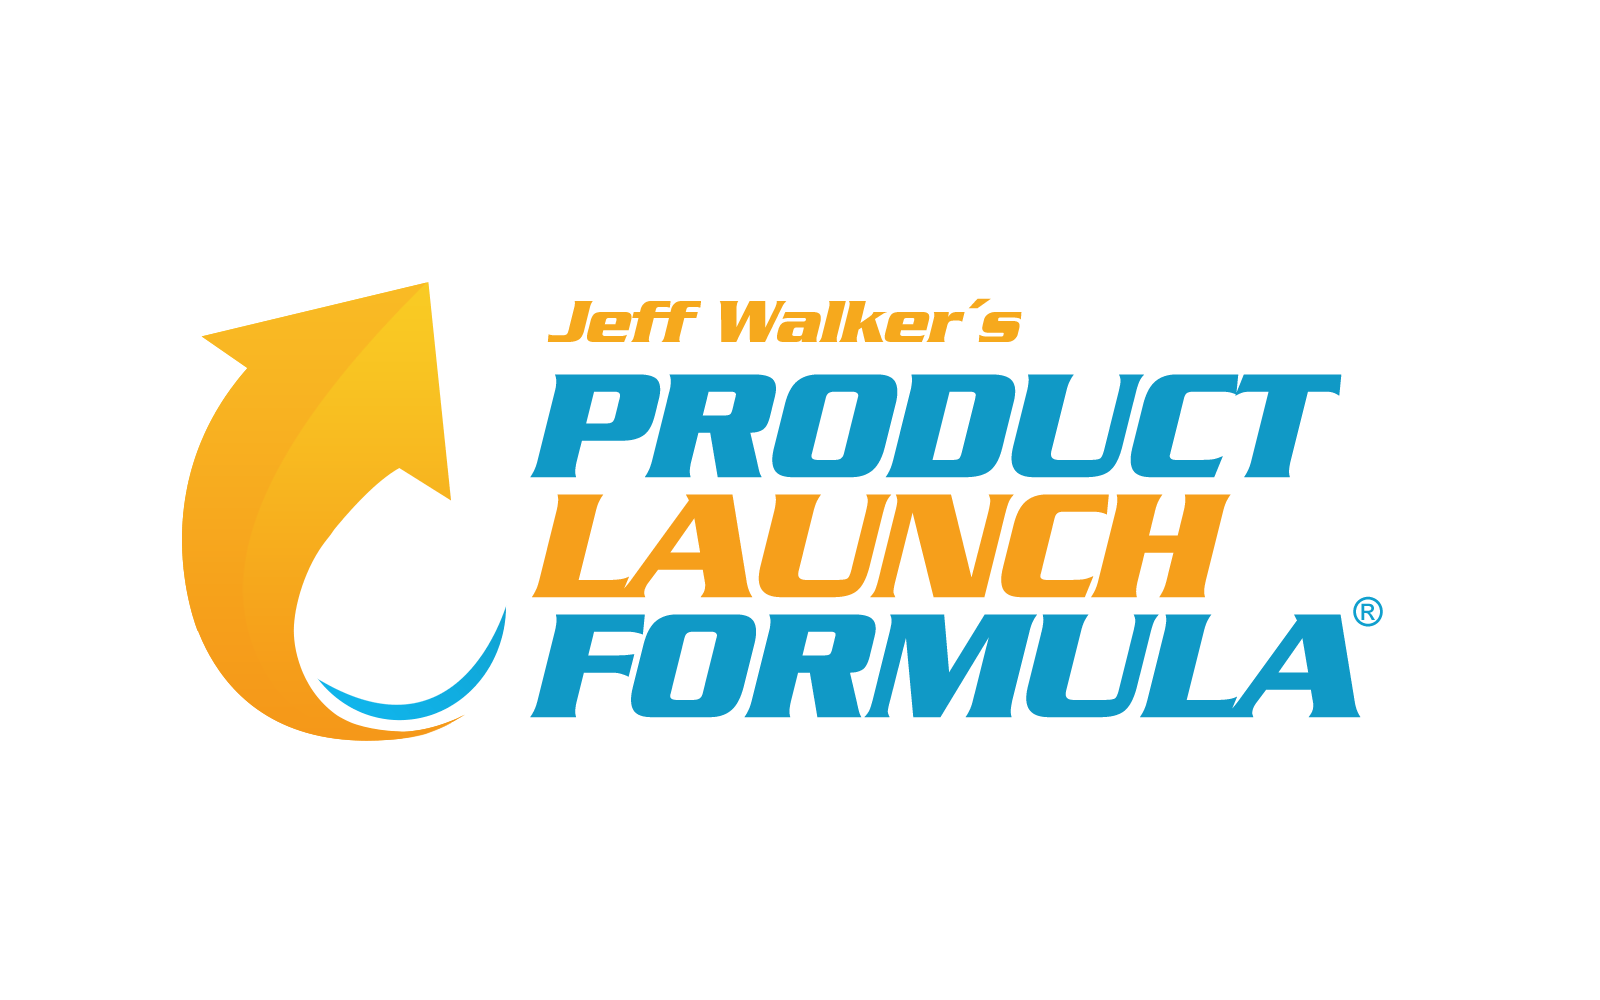 Product launch formula review review of 2017 edition malvernweather Choice Image